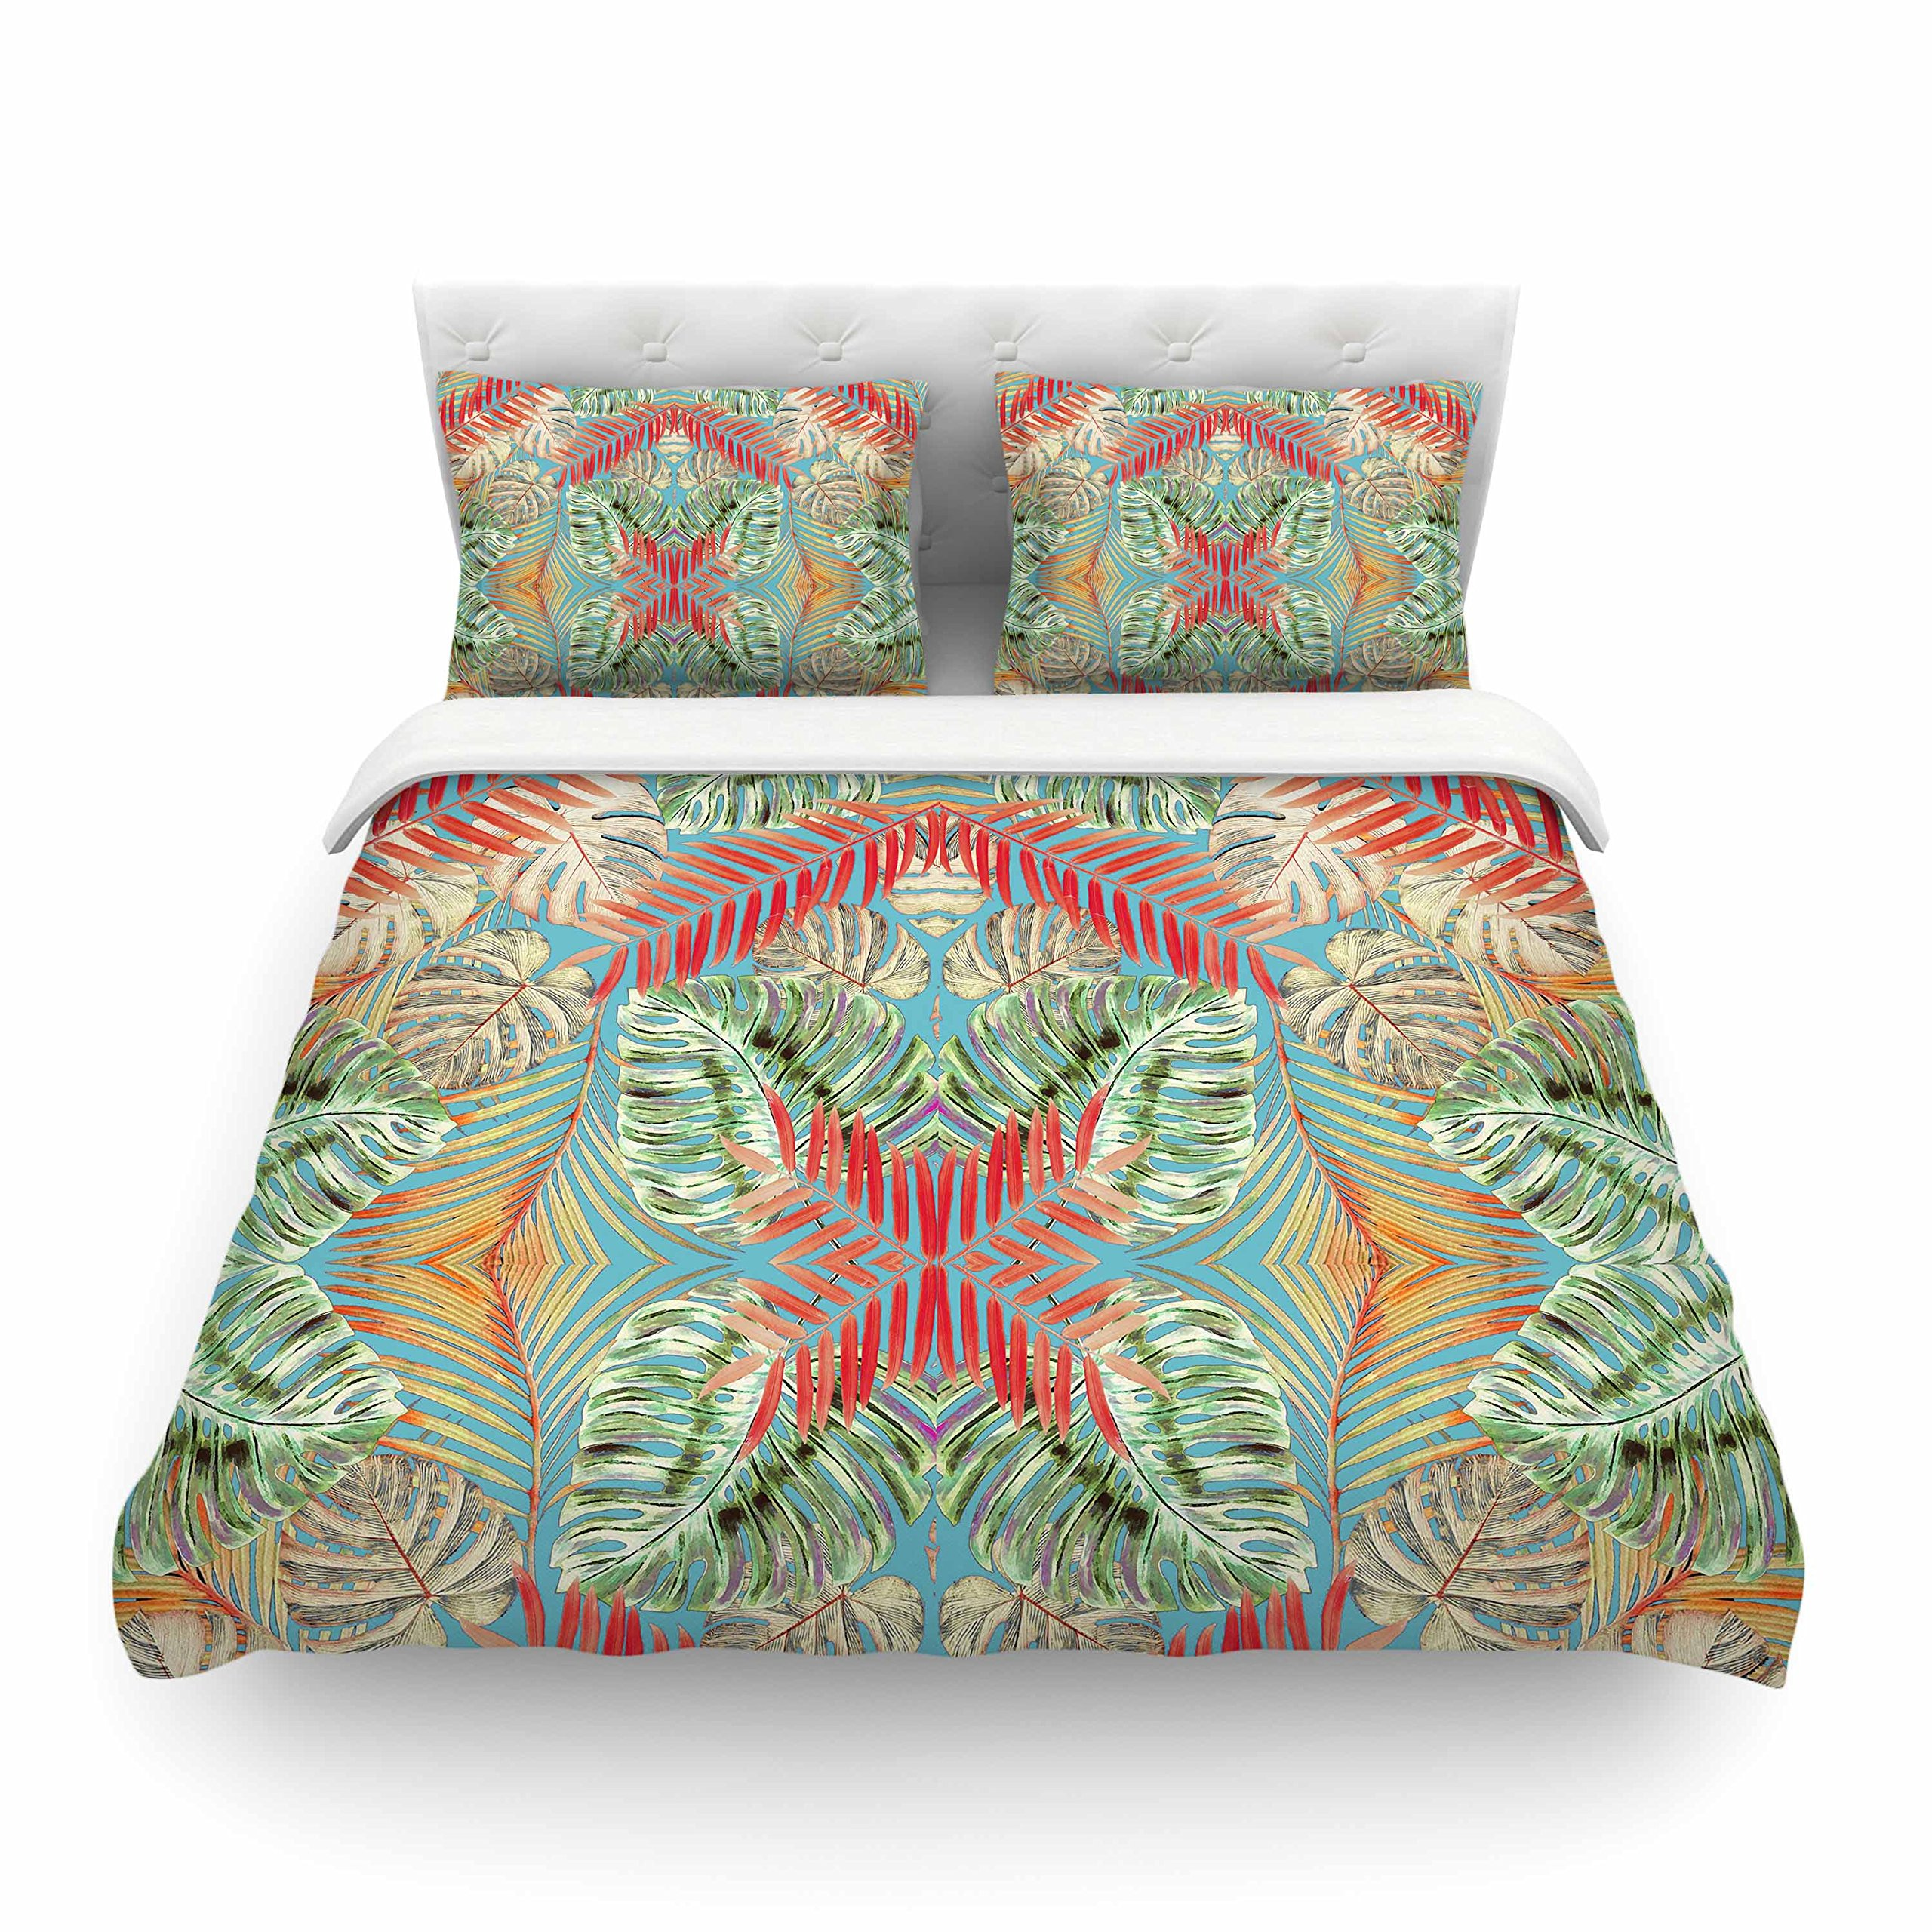 KESS InHouse AC1107ACD03 Alison Coxson ''Summer Jungle Love Blue '' Red Aqua King Cotton Duvet Cover, 104 by 88'',,